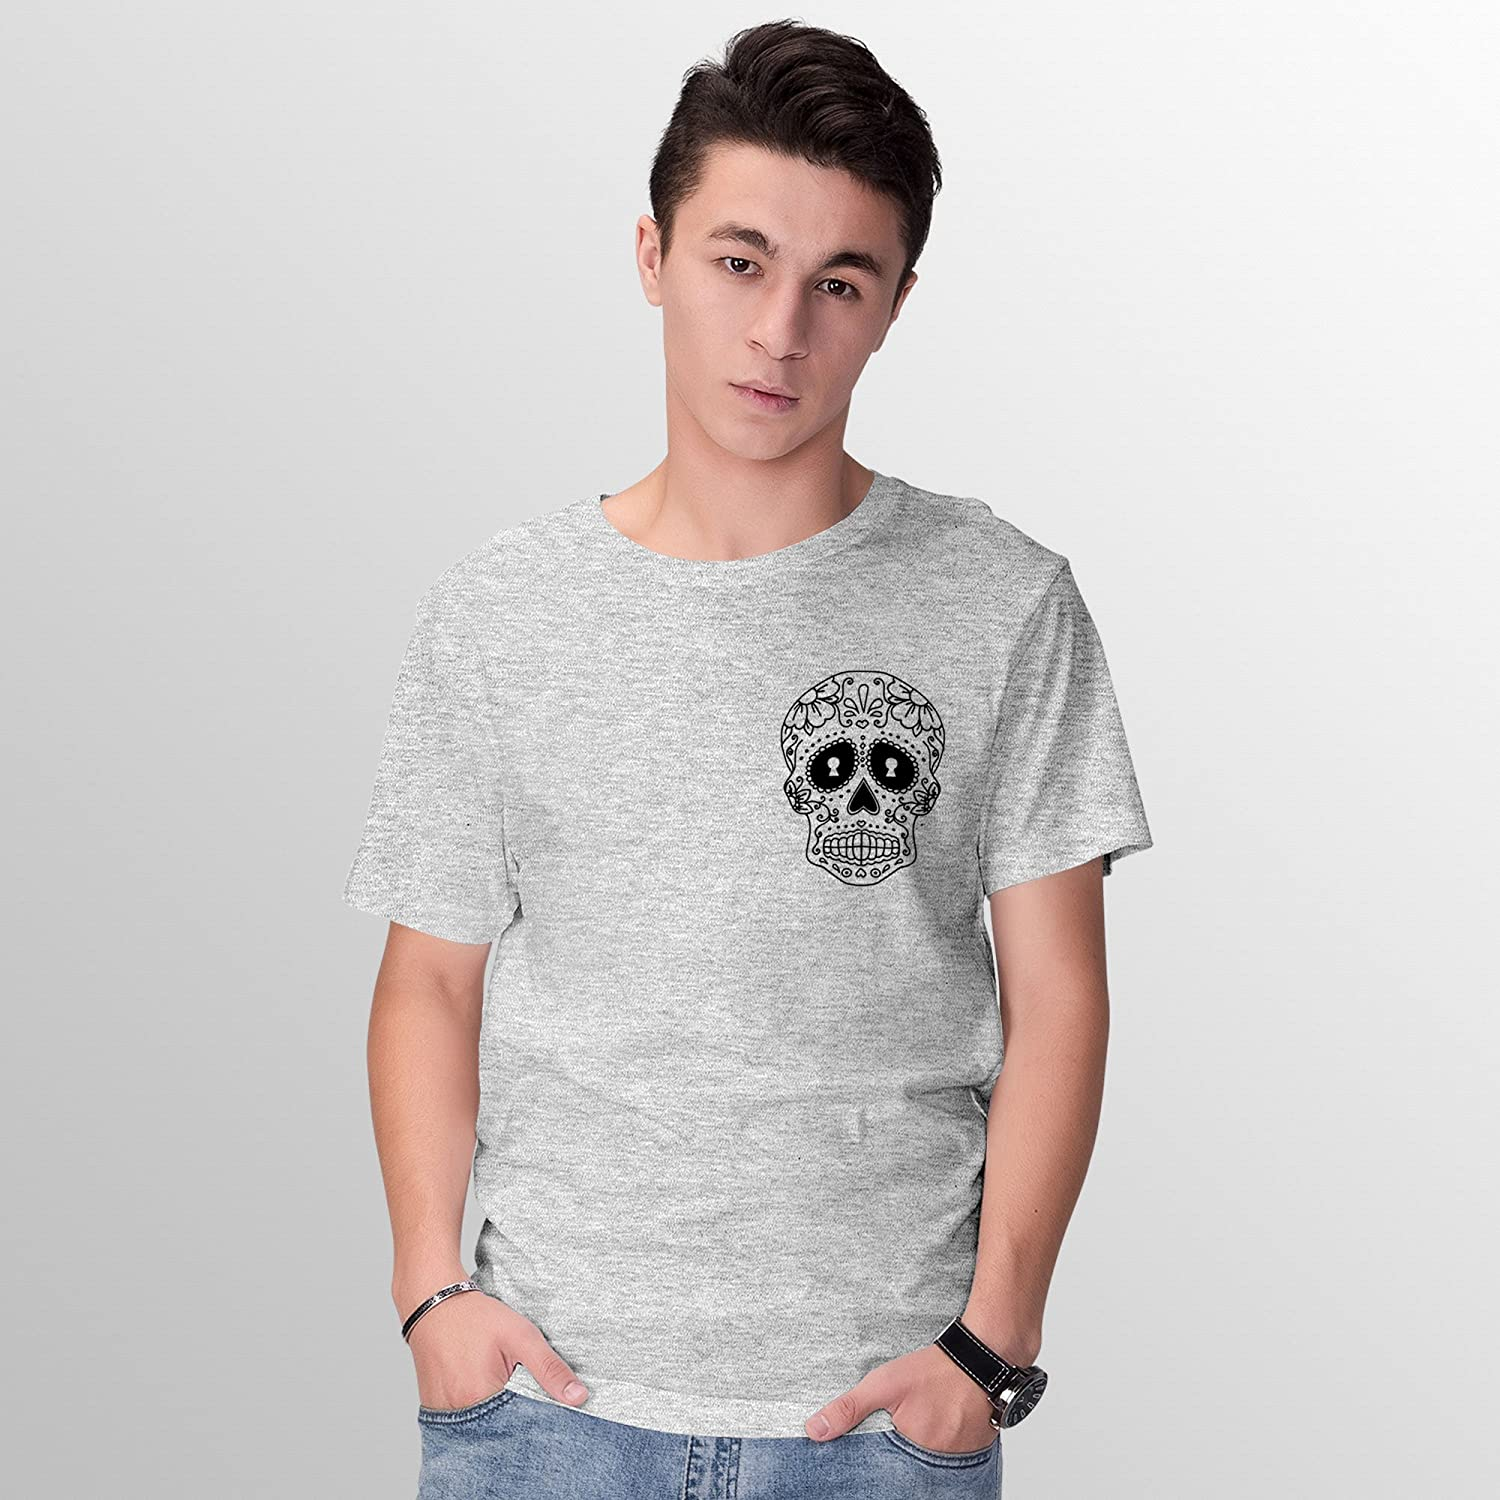 Shirt Ladies Fitted Sugar Skull Mexican Day Of The Dead T-Shirt Short Sleeve Top Unisex Tee